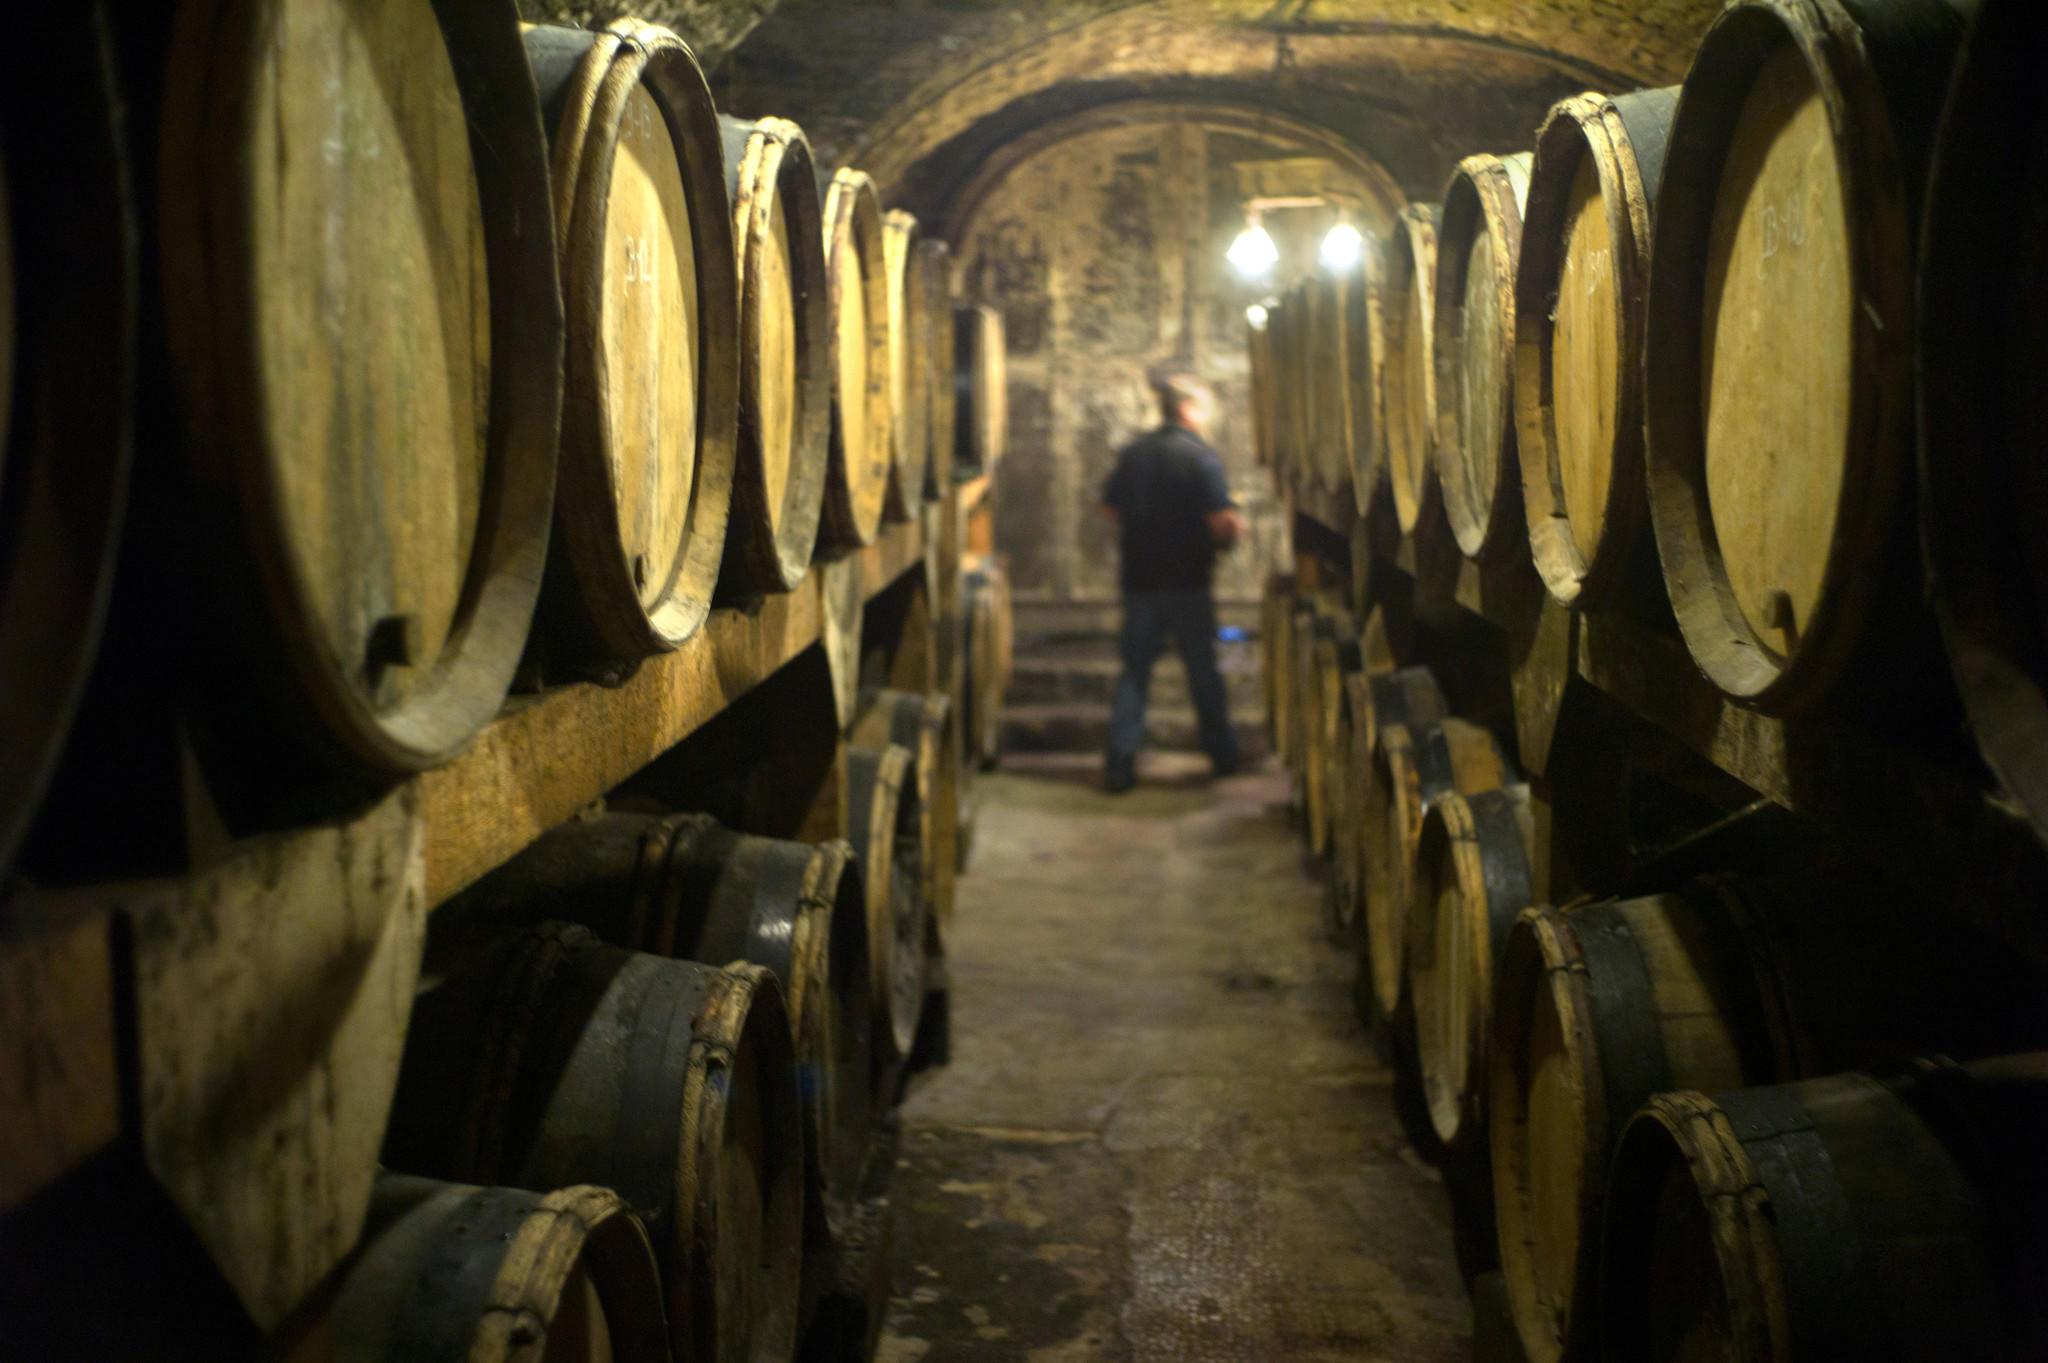 A person walks past barrels of wine stored in the cellar of the Chateau l'Etoile vineyard in l'Etoile.